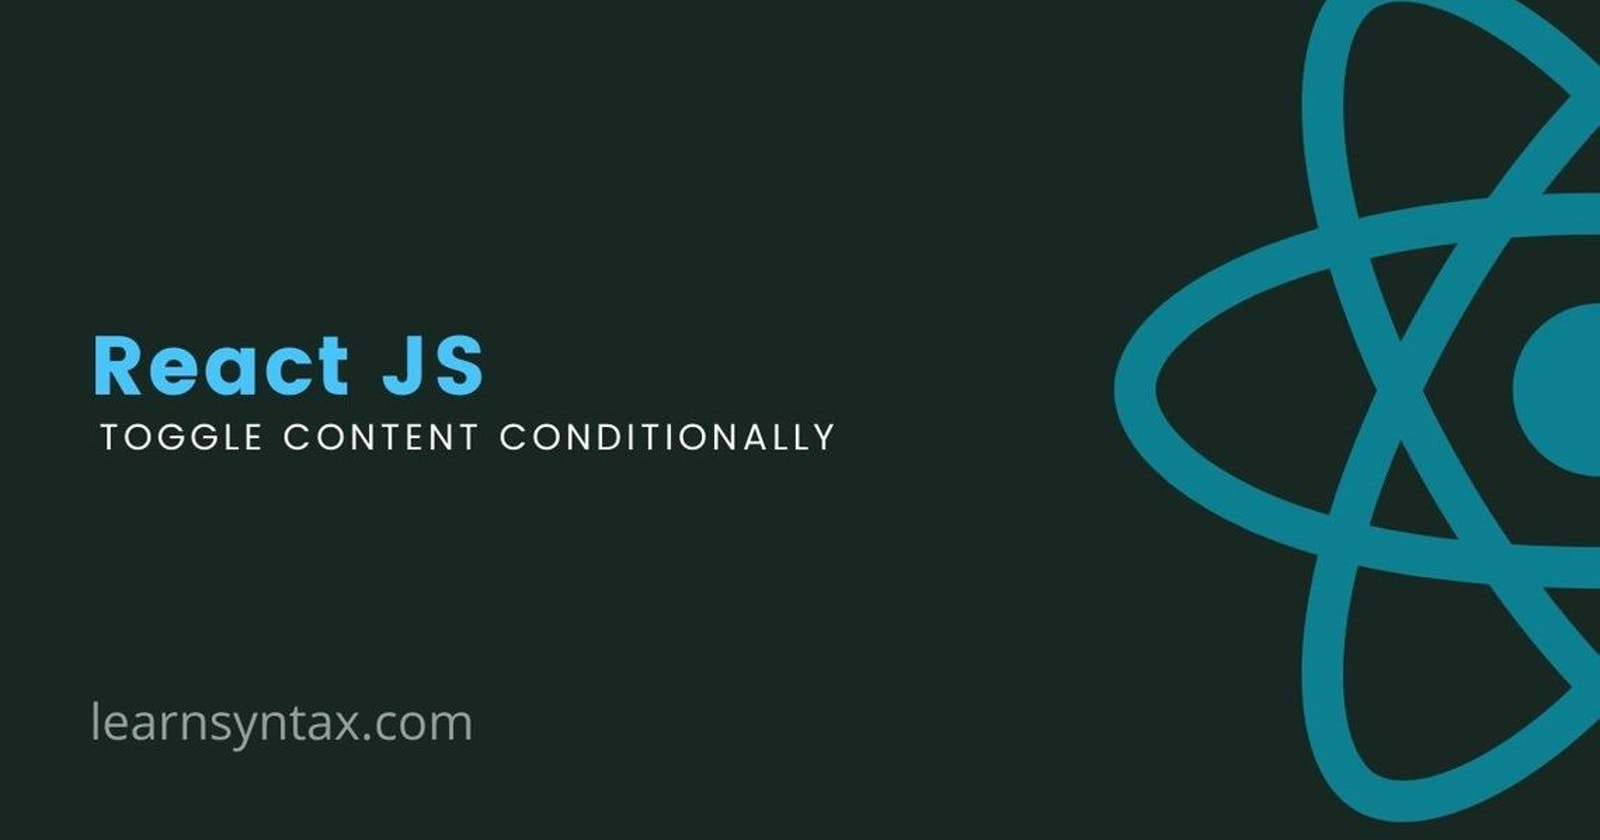 How to render content conditionally in React JS